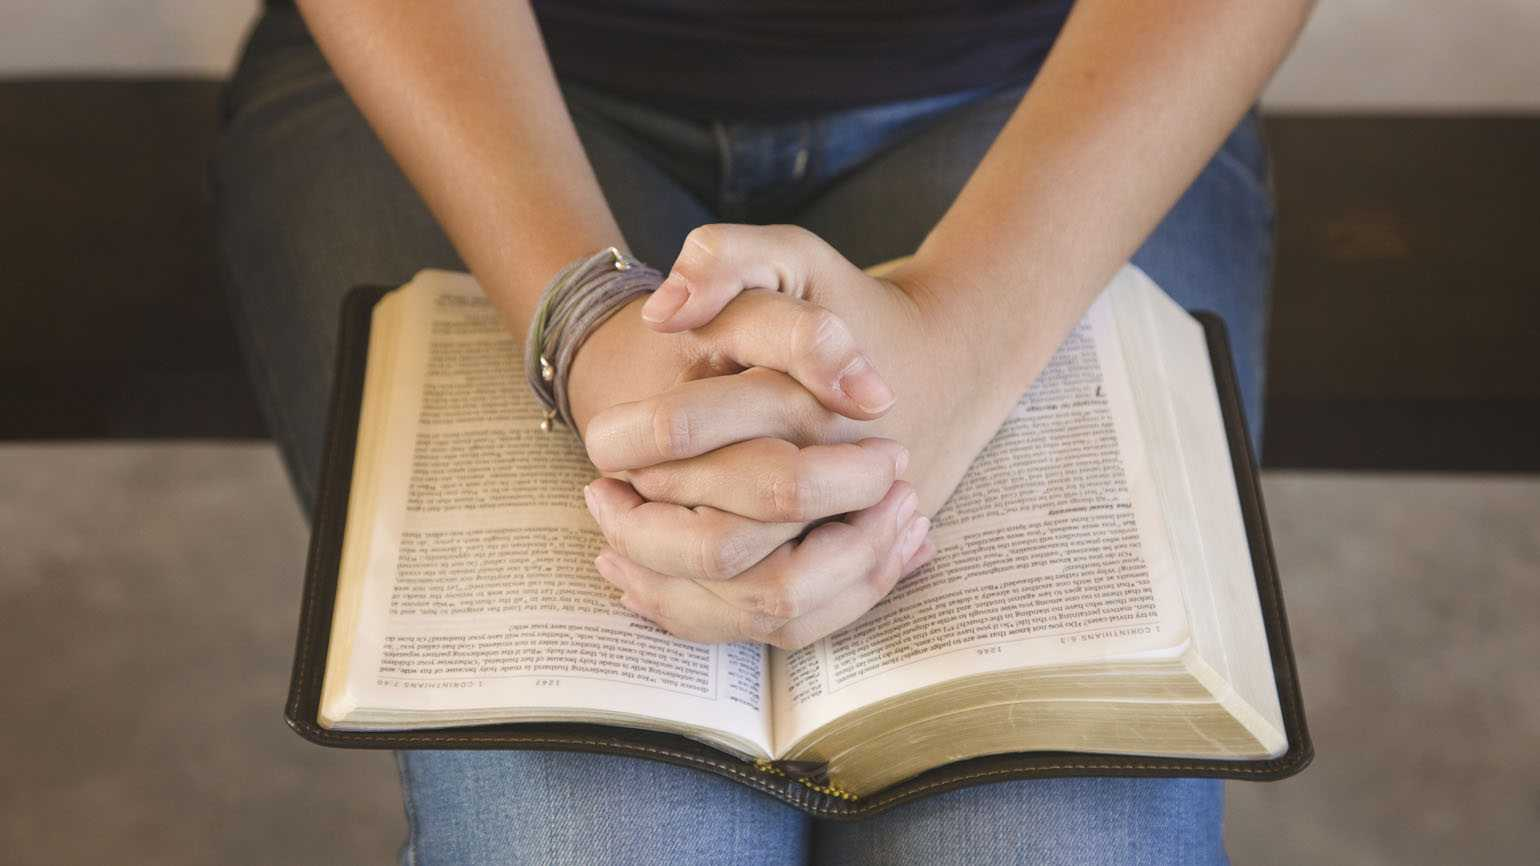 A teenage girl praying with the Bible open.